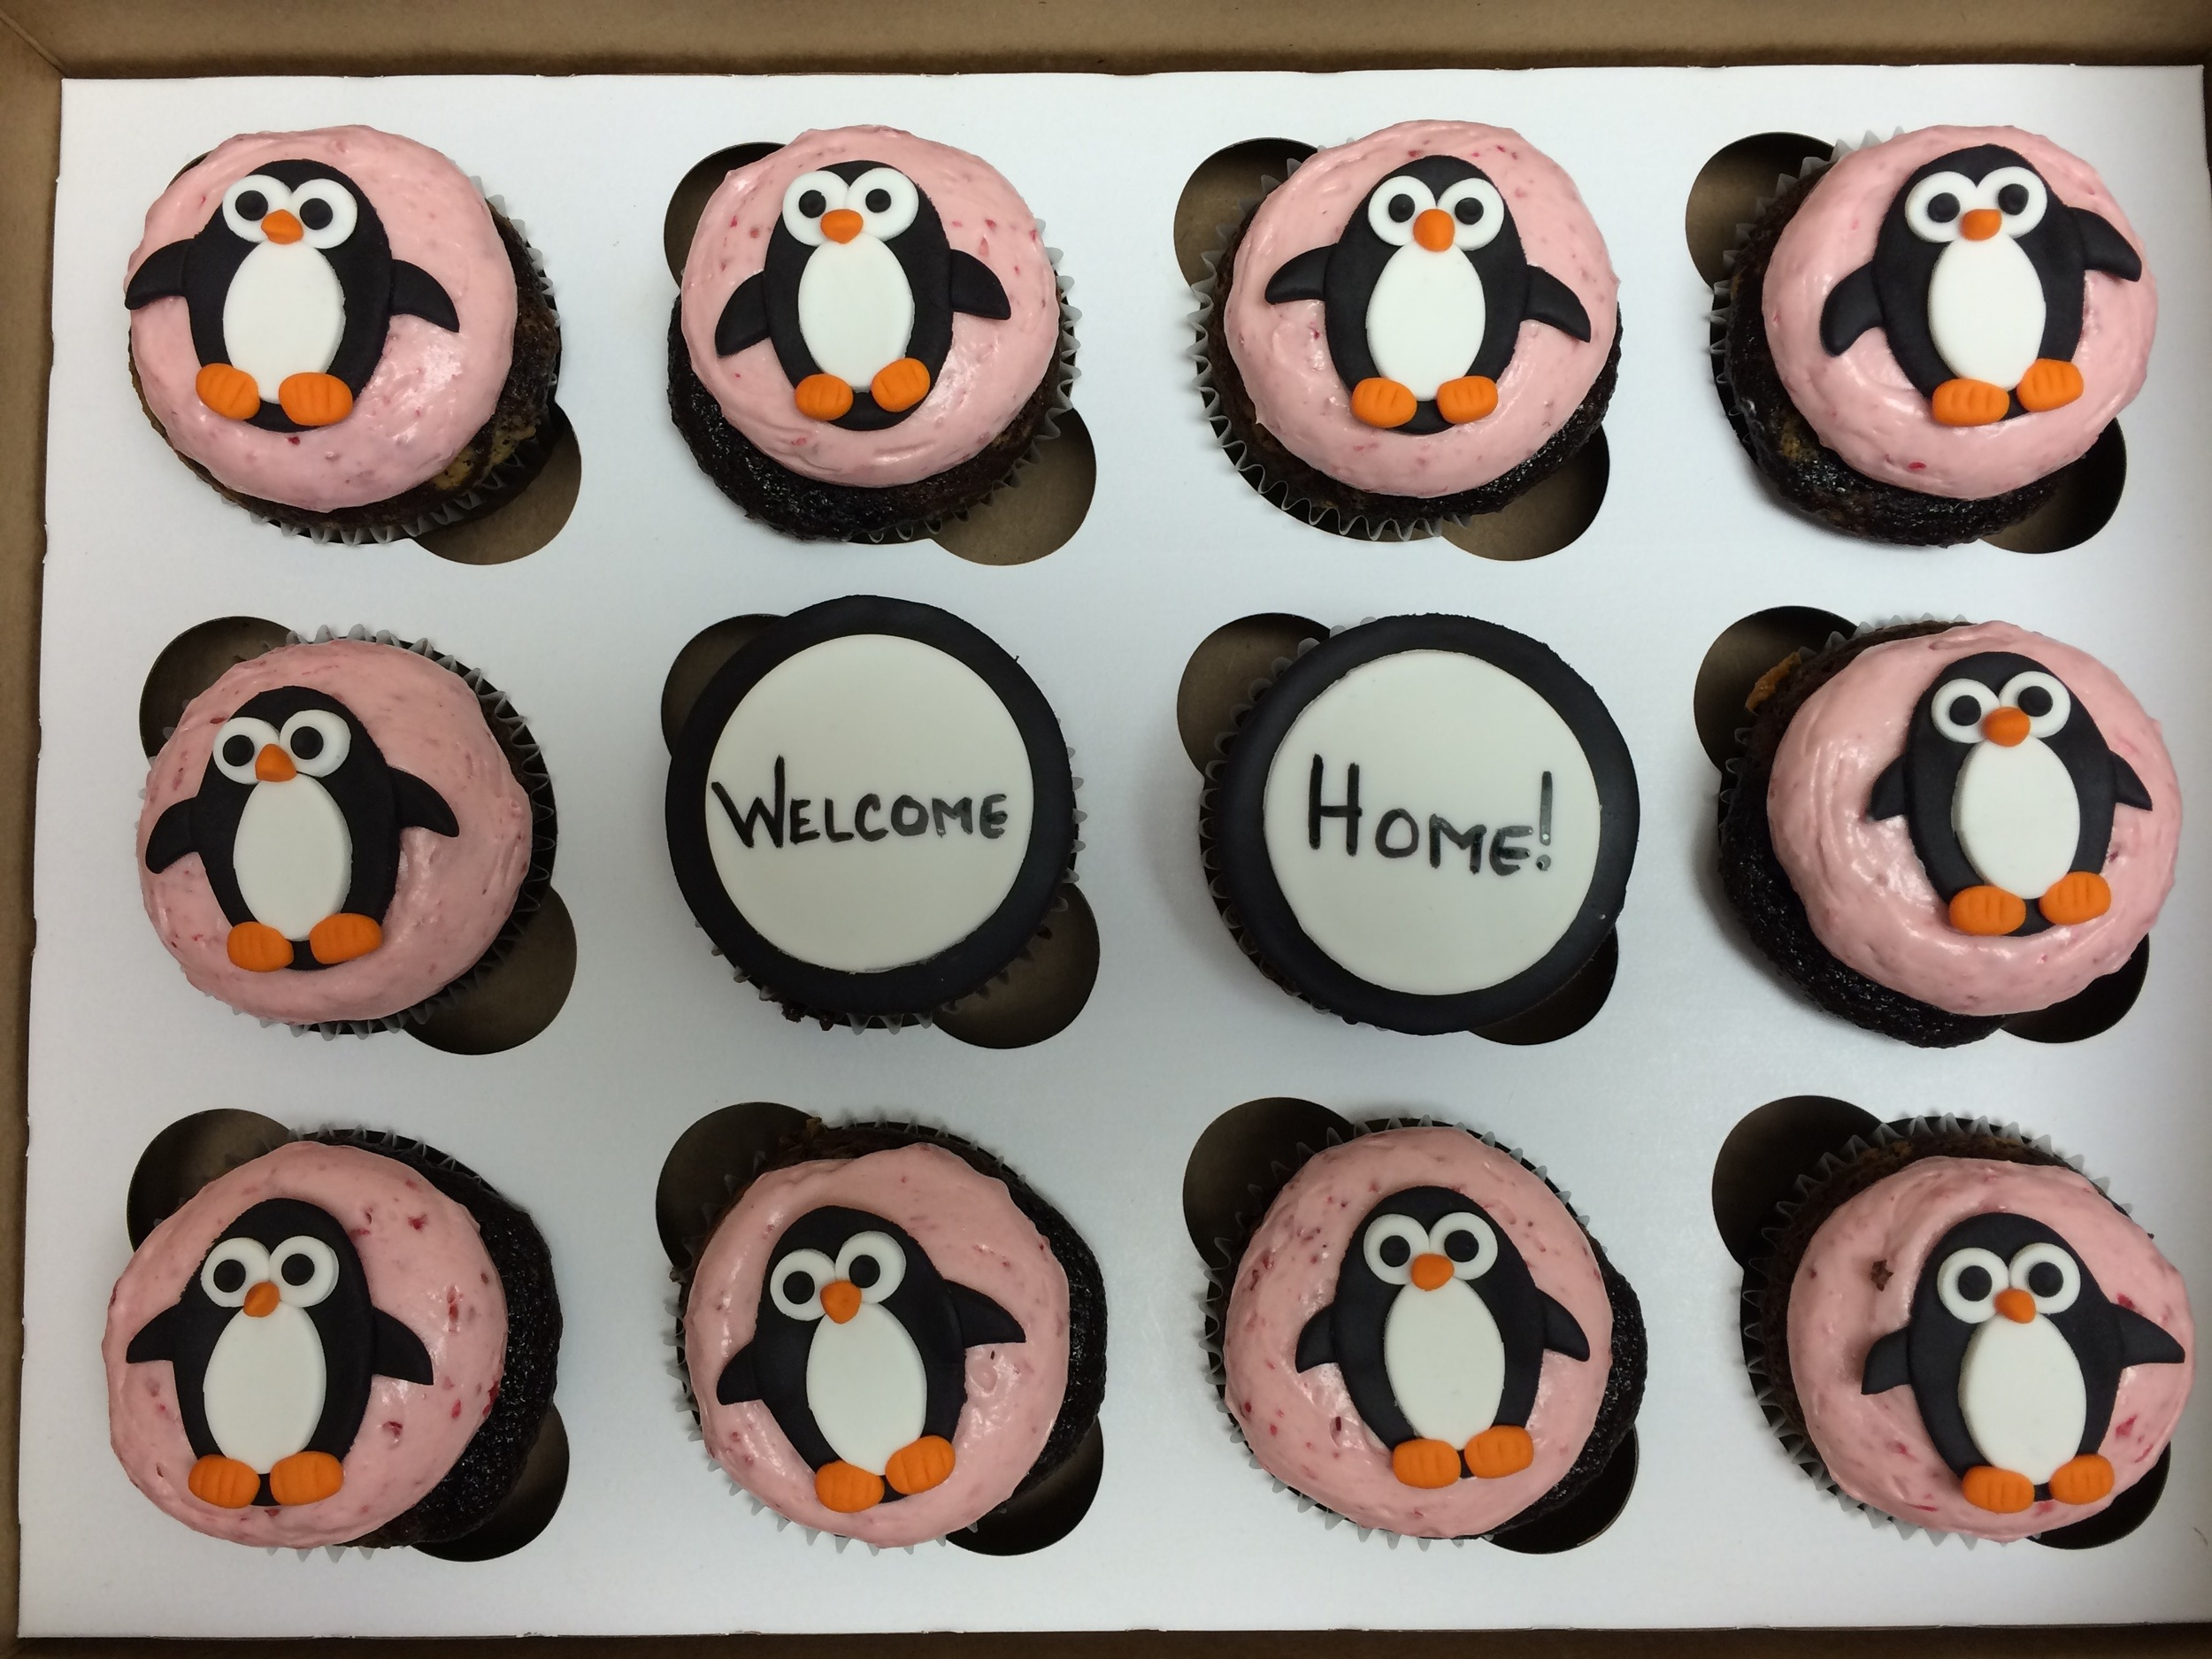 Penguin Cupcakes | Sugar Lab Bake Shop